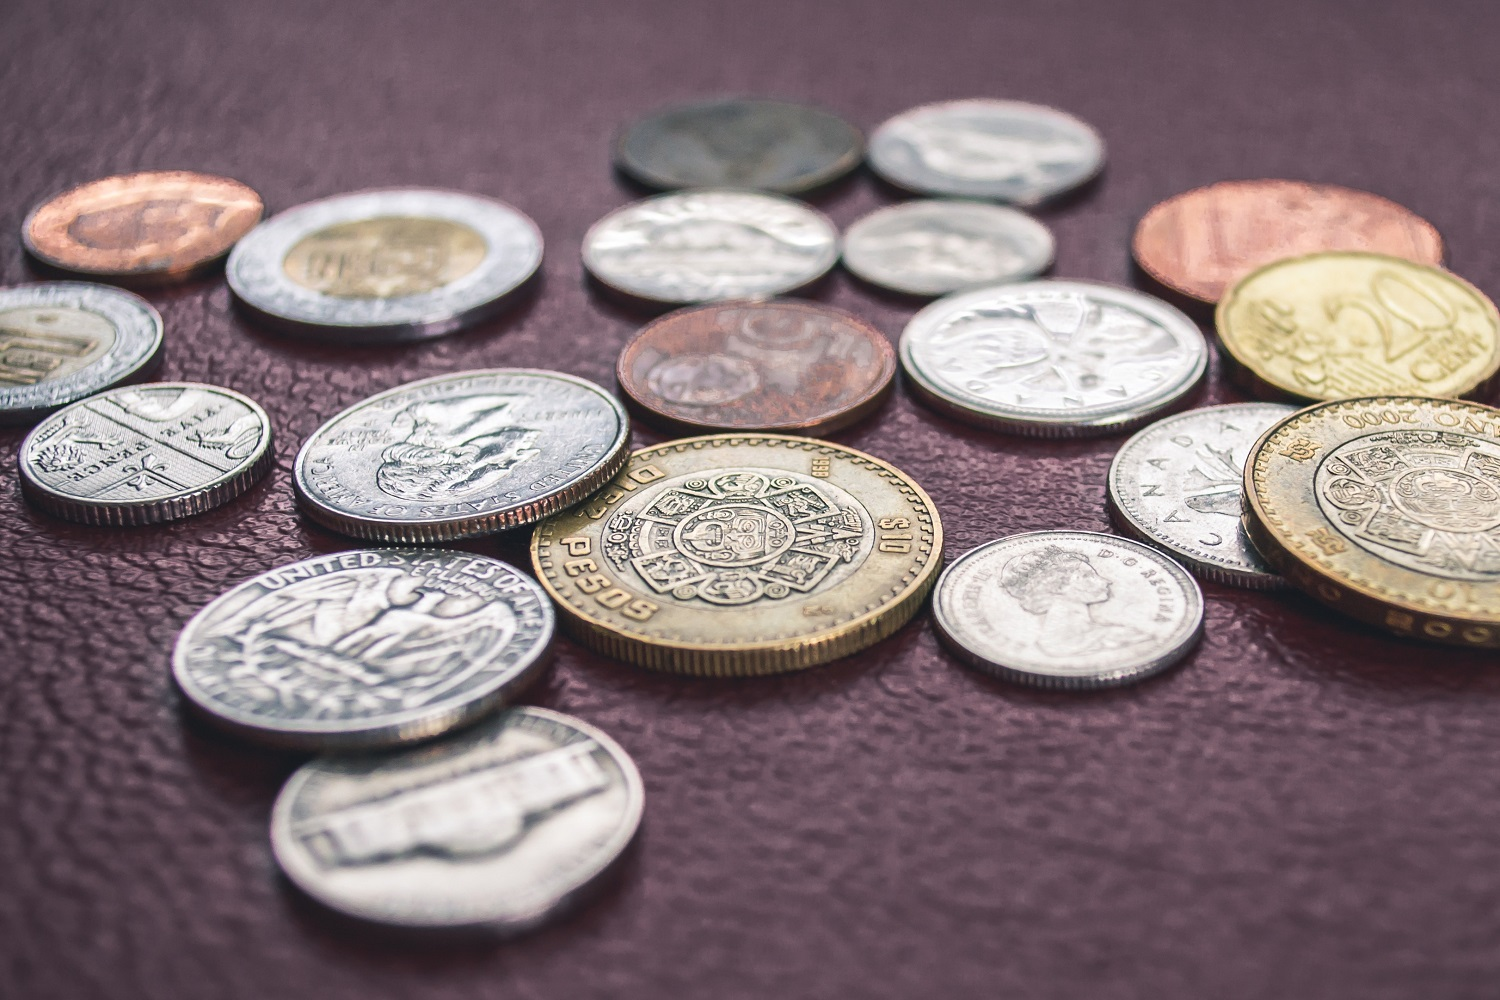 Image of a variety of coin money from around the world displayed next to and one on top of the other on a wooden background.